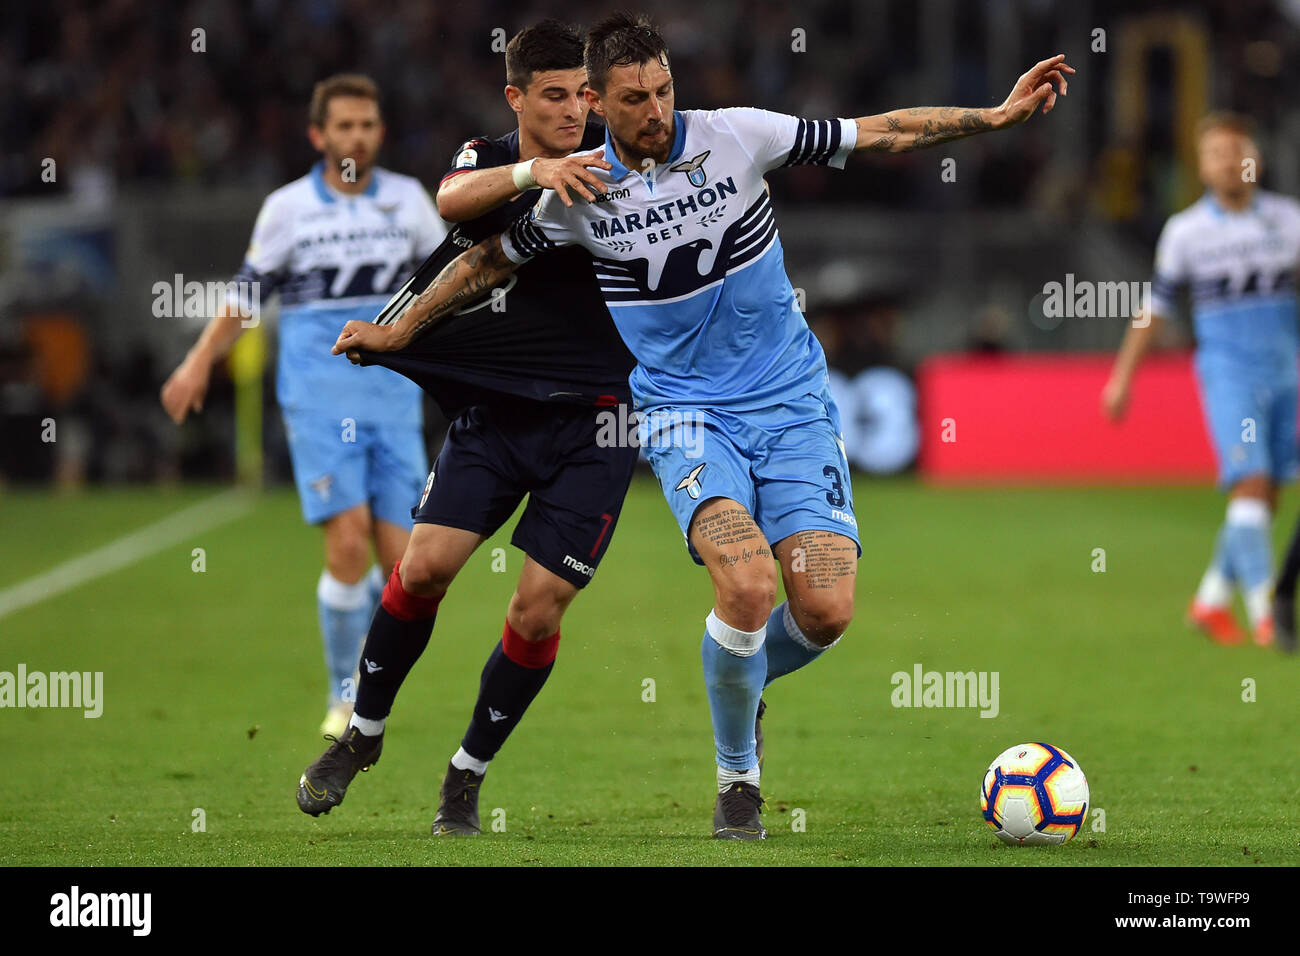 Rome, Italy. 21st May, 2019. Serie A Lazio vs Bologna Stadio Olimpico.Roma 20-05-2019 In the picture Riccardo Orsolini and Francesco Acerbi Photo Photographer01 Credit: Independent Photo Agency/Alamy Live News - Stock Image